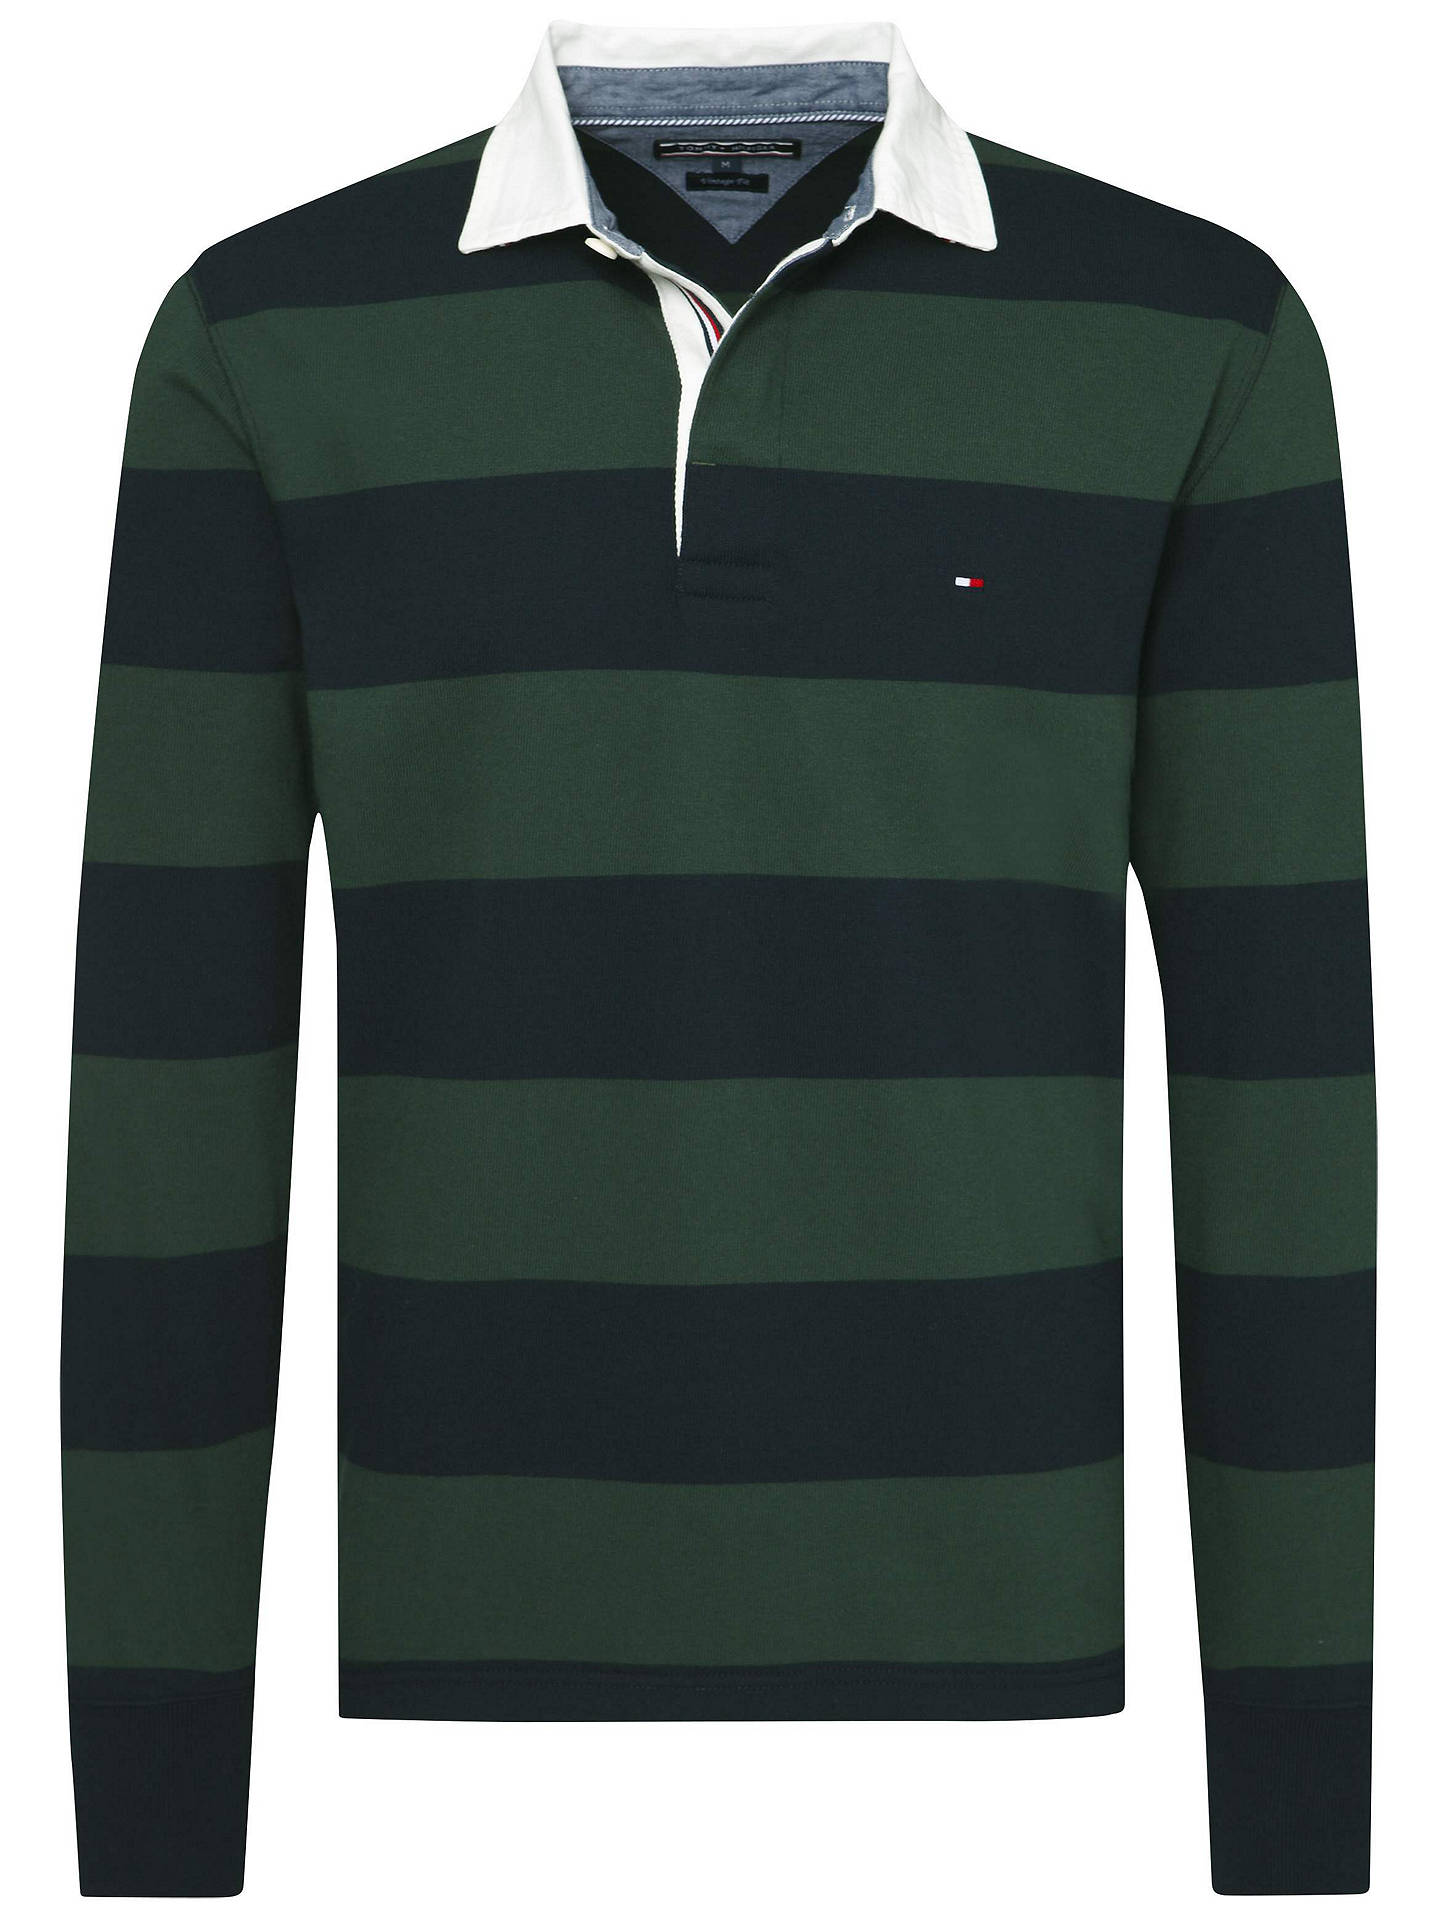 tommy hilfiger basic block stripe rugby shirt, sky captain darkest